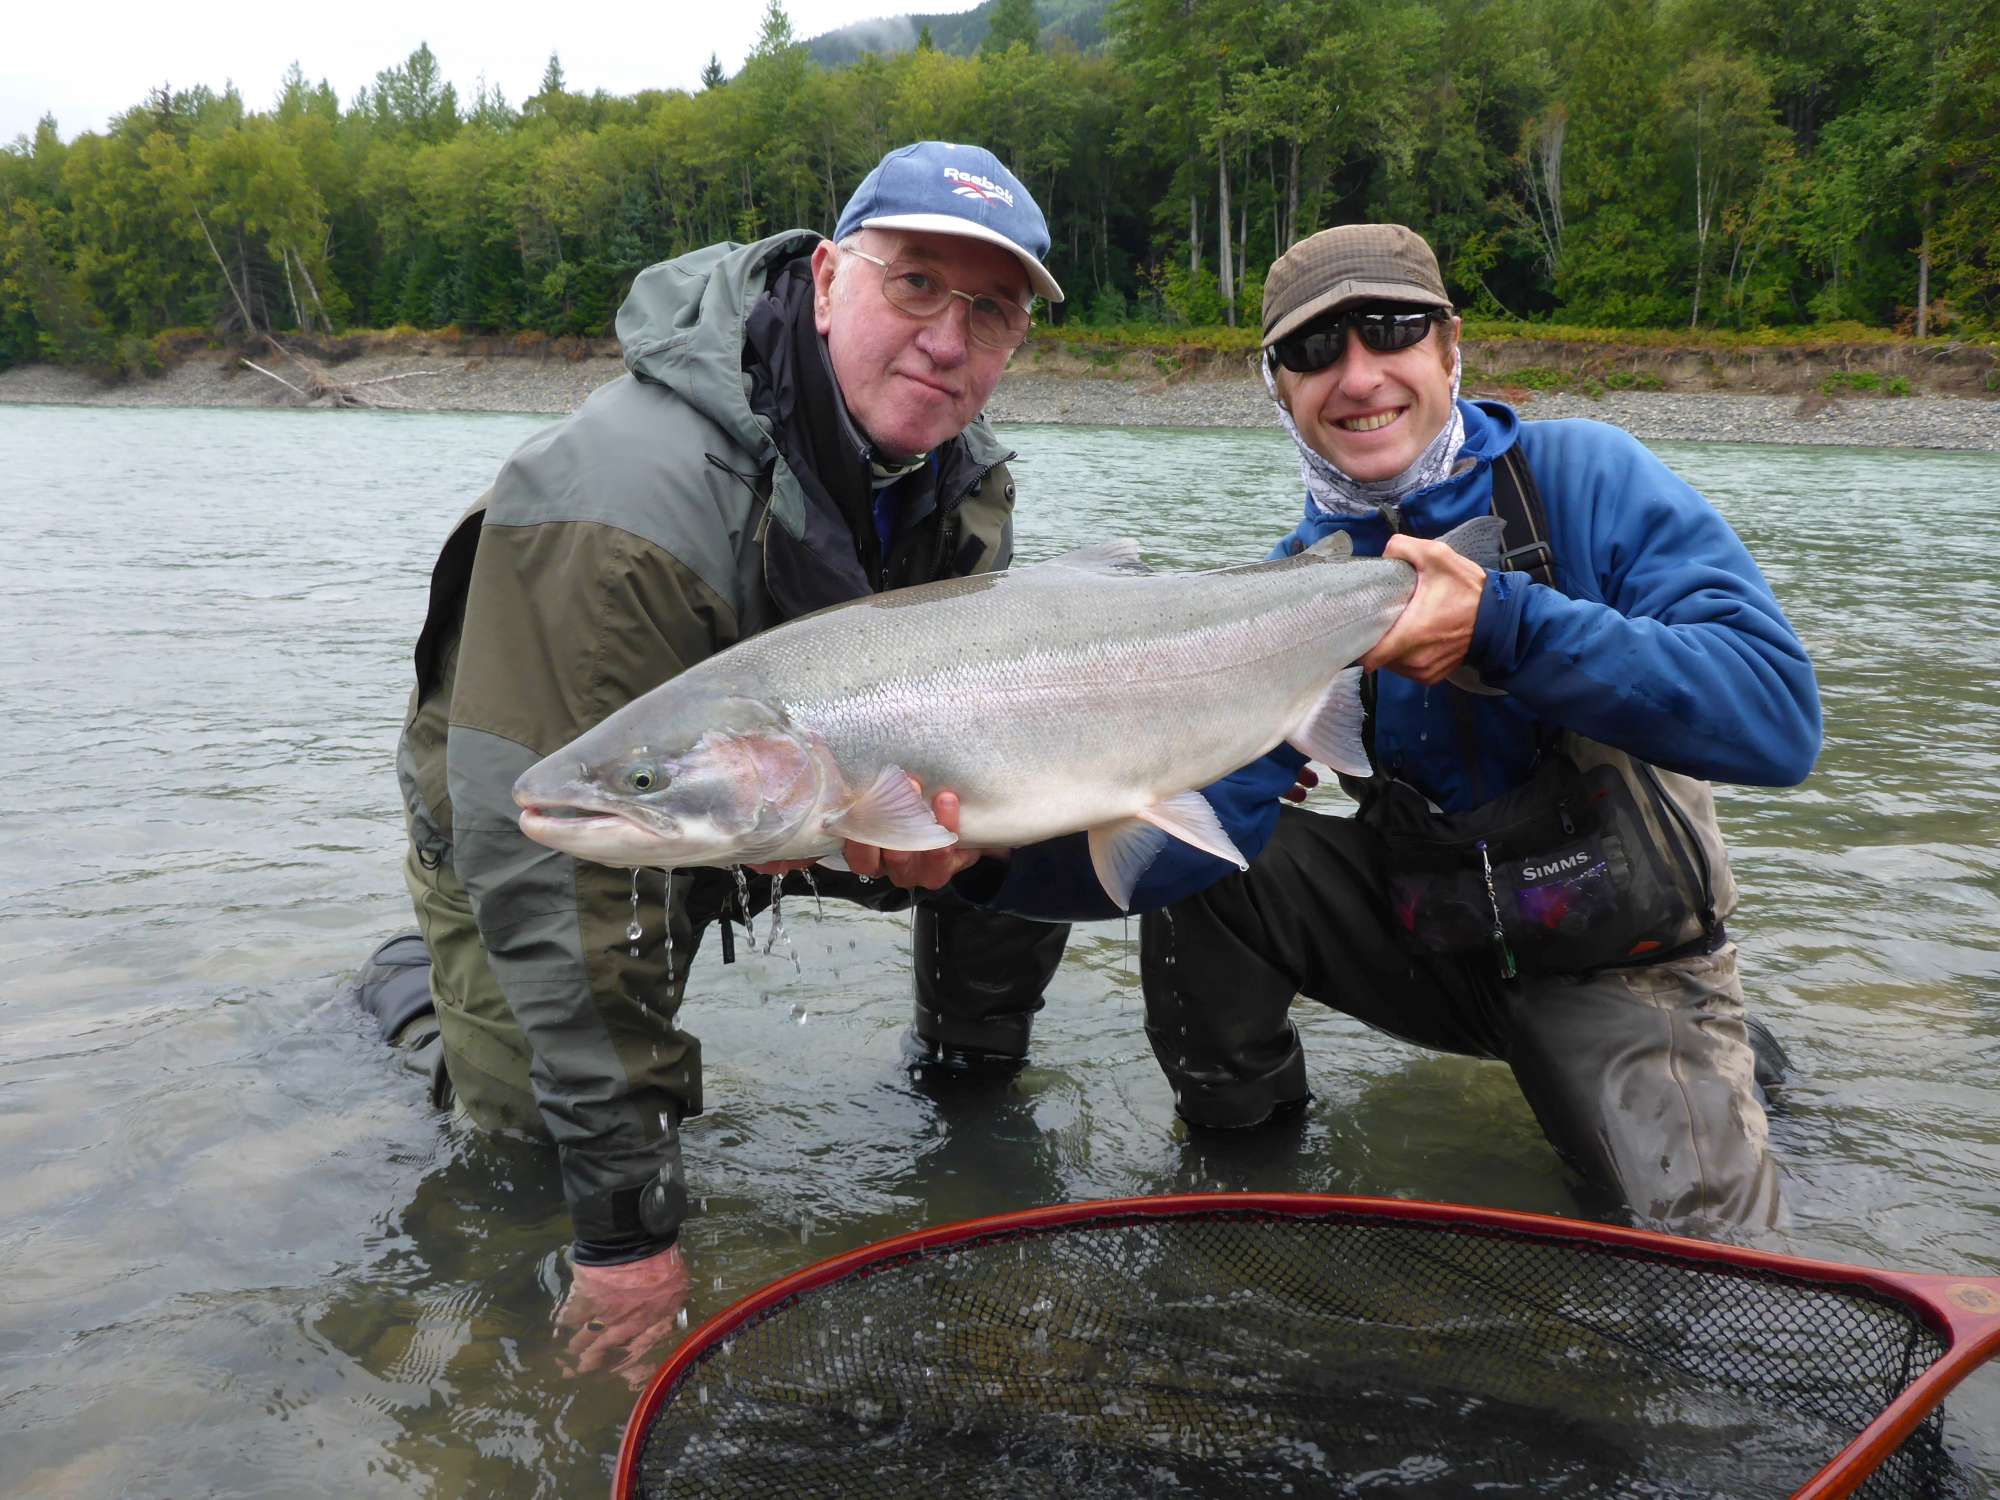 fishing british columbia, fishing skeena, steelhead fishing, fishing canada, kalum river, copper river, skeena river, nicholas dean, pioneer lodge